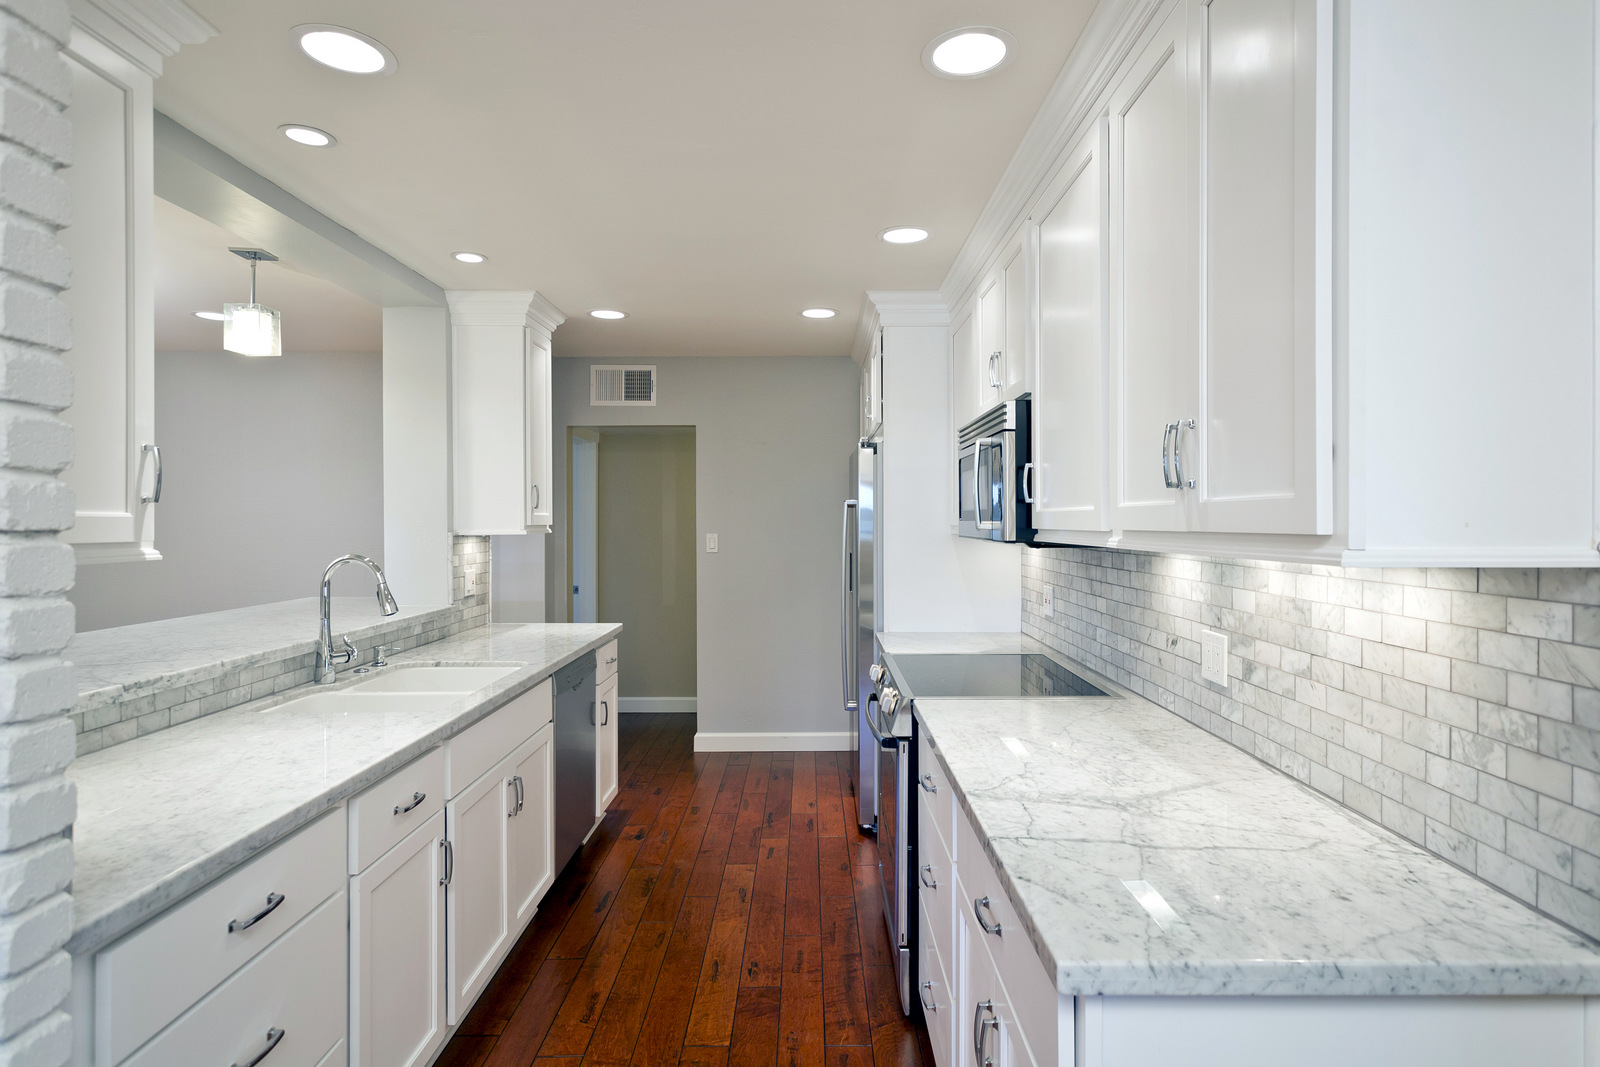 kitchen cabinet colors finishes kitchen remodeling contractor Phoenix AZ Kitchen Cabinets in White